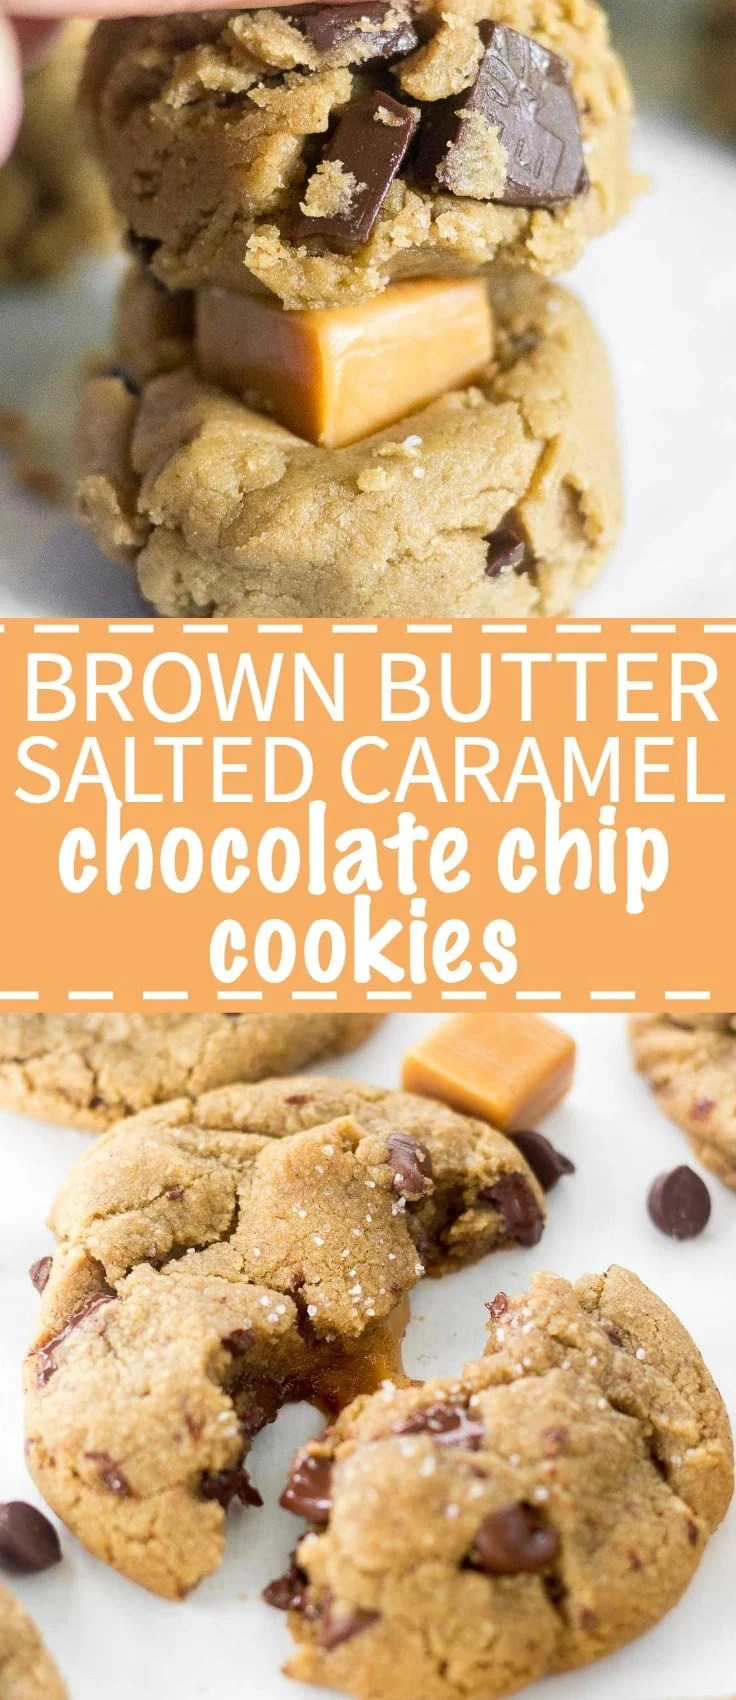 Brown Butter Salted Caramel Chocolate Chip Cookies are a mouthful of flavor! With a soft and chewy texture, chocolate chips and chocolate chunks, plus a gooey caramel filling, this chocolate chip cookie recipe will satisfy all cookie lovers.